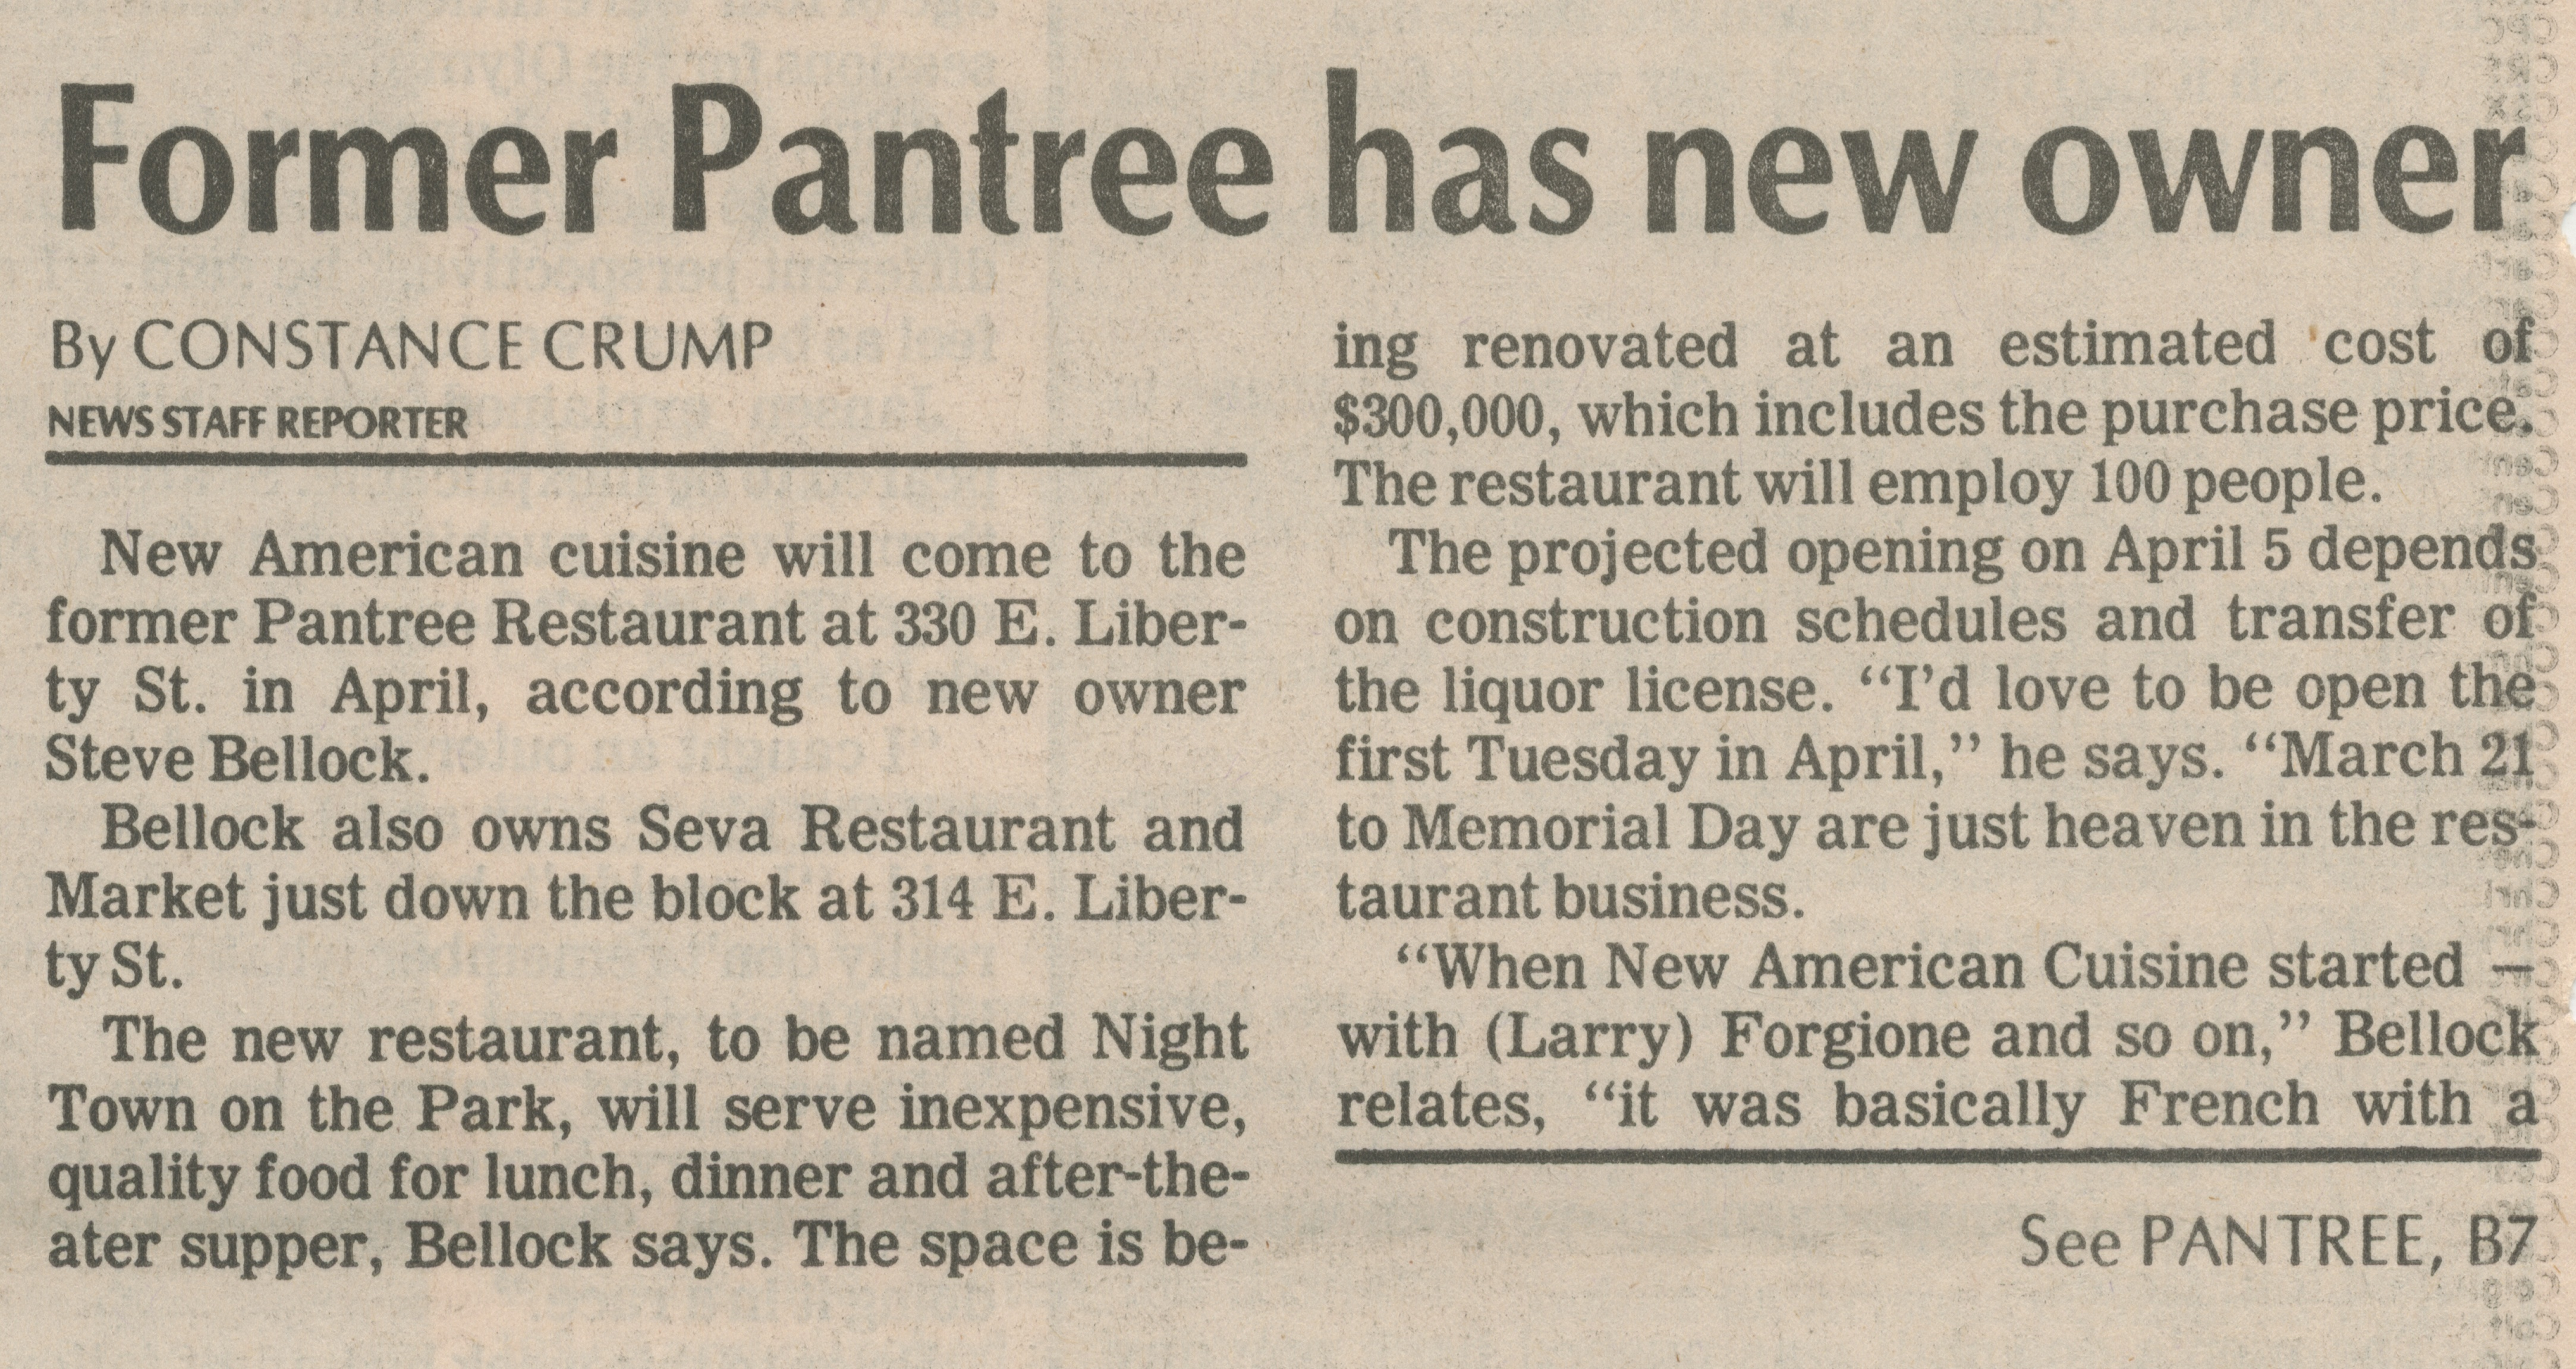 Former Pantree has new owner image